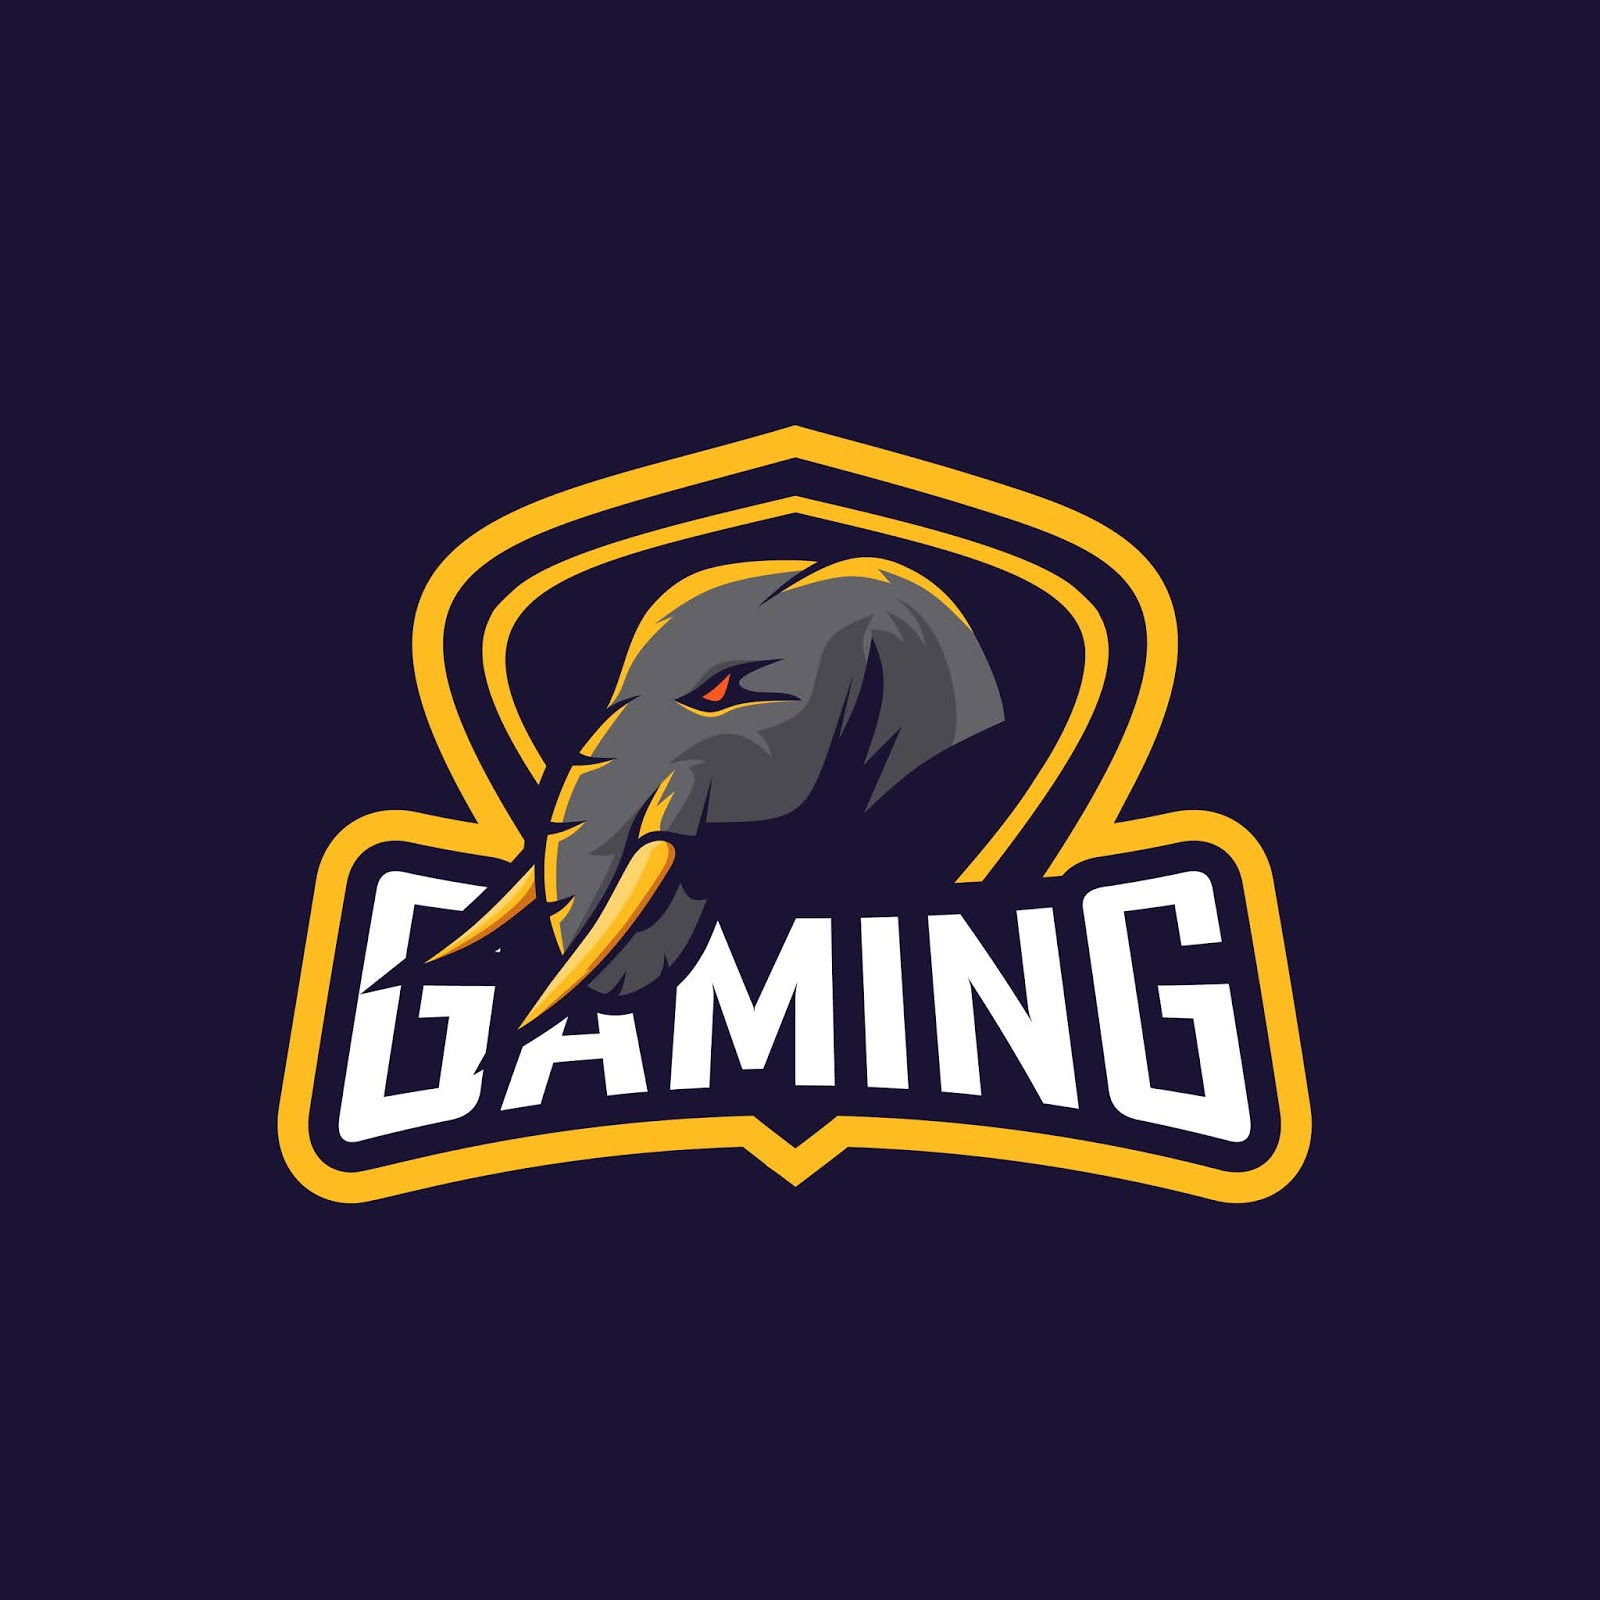 Awesome Elephant Logo Squad Gaming Free Download Vector CDR, AI, EPS and PNG Formats